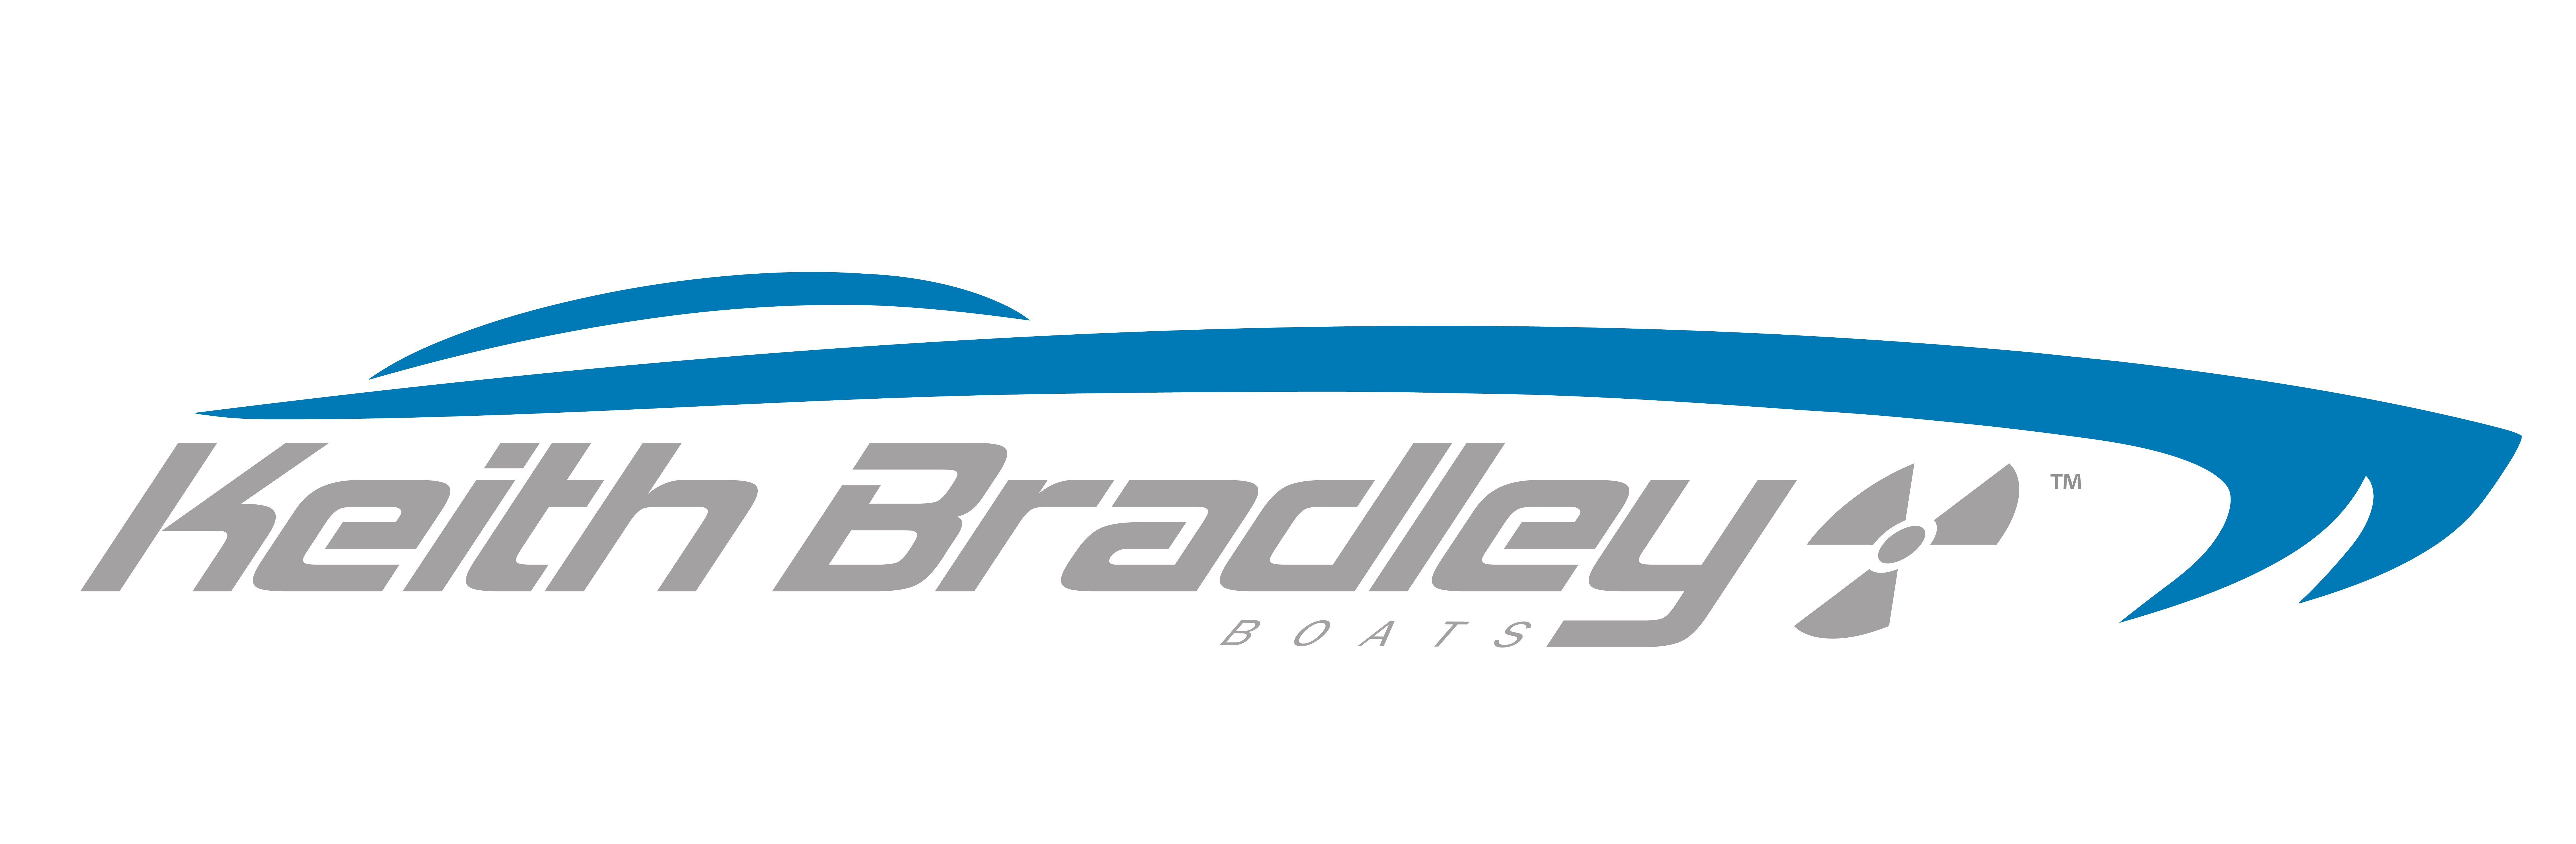 Keith Bradley Boats